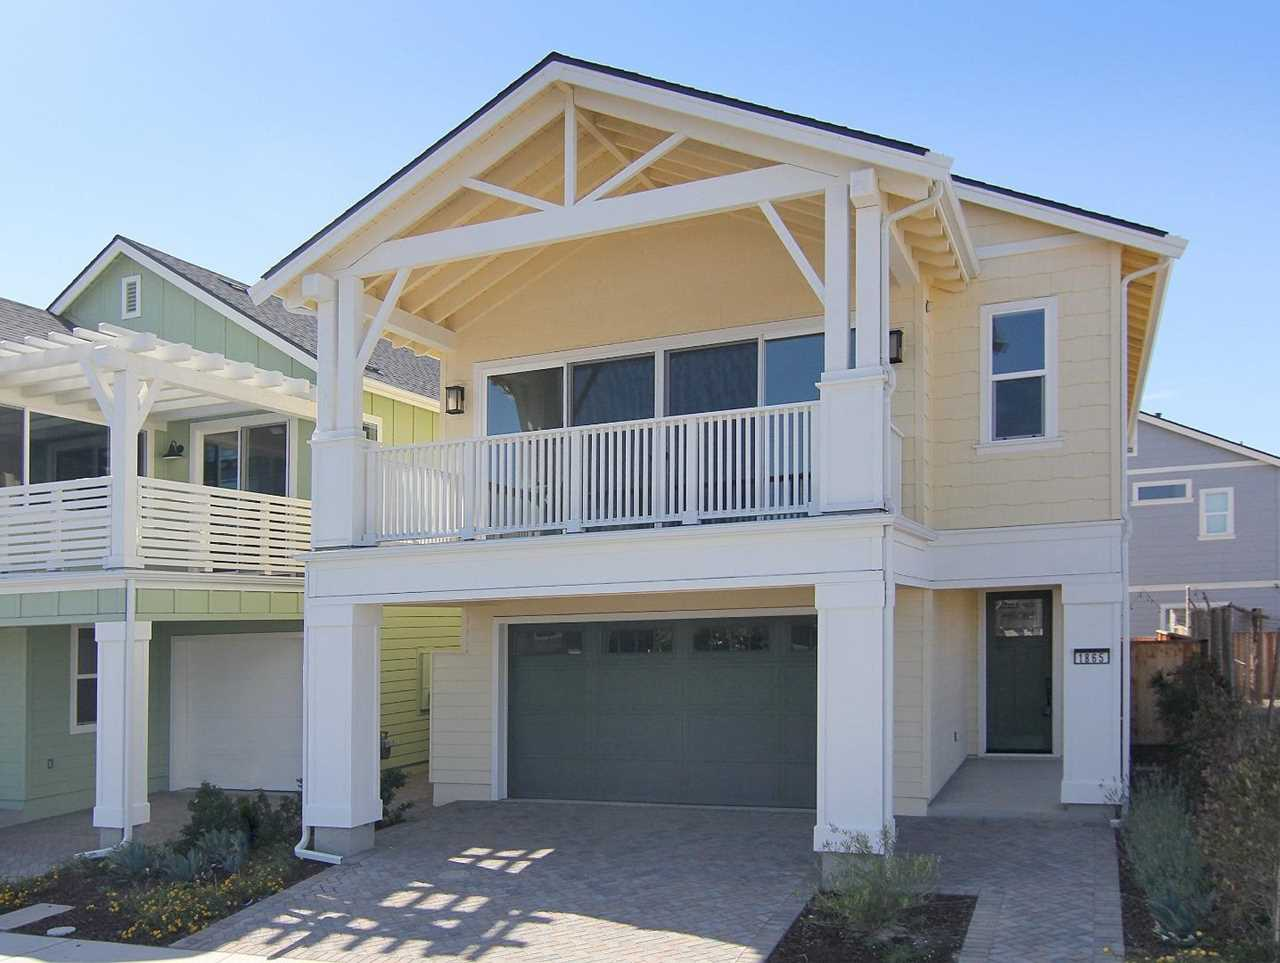 1865 Ocean View Ave,SAND CITY,CA,homes for sale in SAND CITY Photo 1